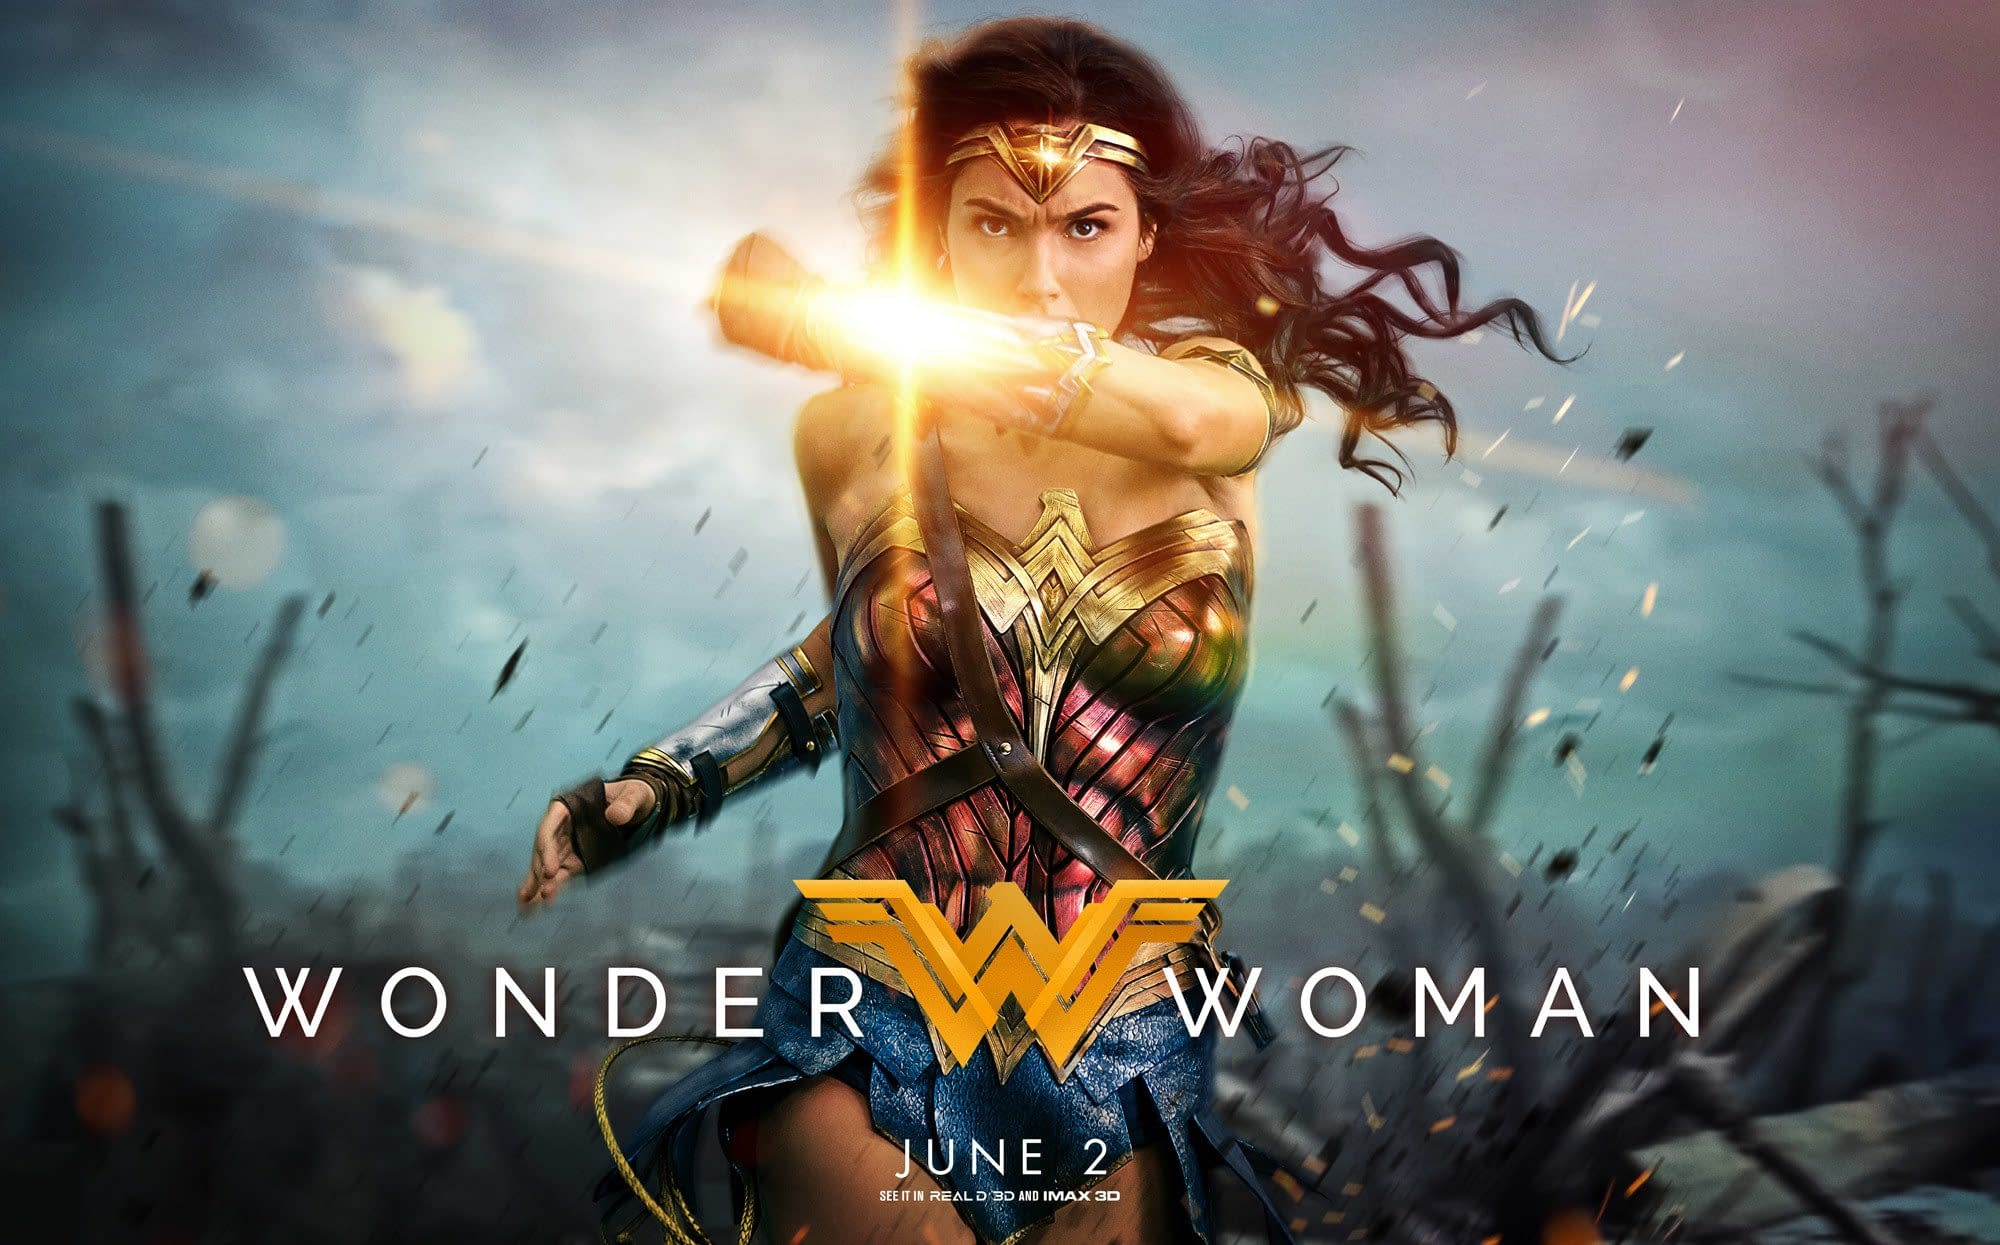 Wonder Woman Shatters DC's Glass Ceiling, While Marvel's Is Made Of Vibranium (Fox Holds The Adamantium Rights)